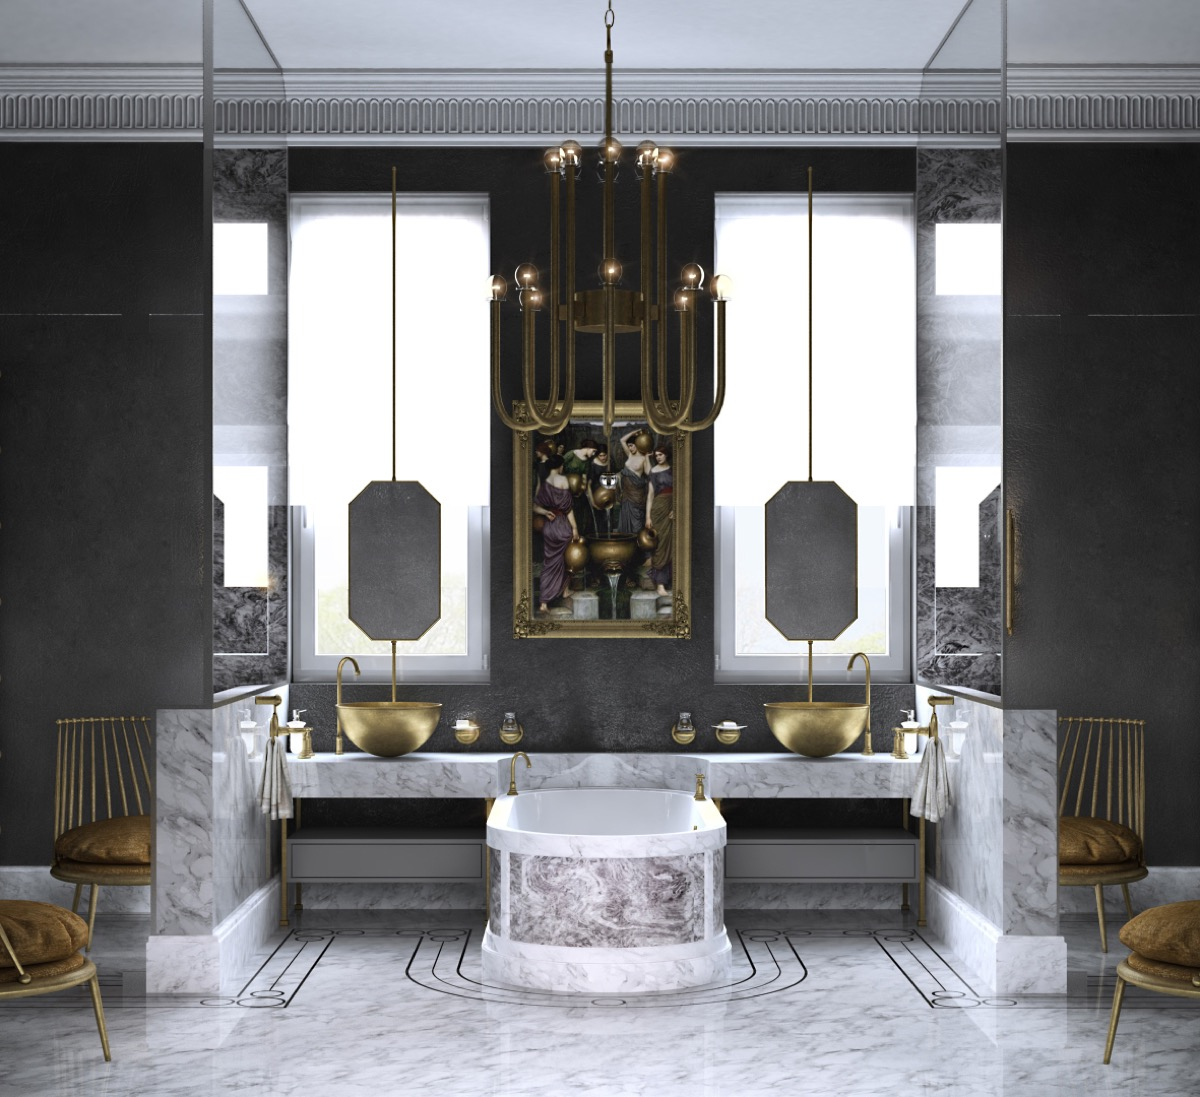 36 Modern Grey & White Bathrooms That Relax Mind Body & Soul images 32